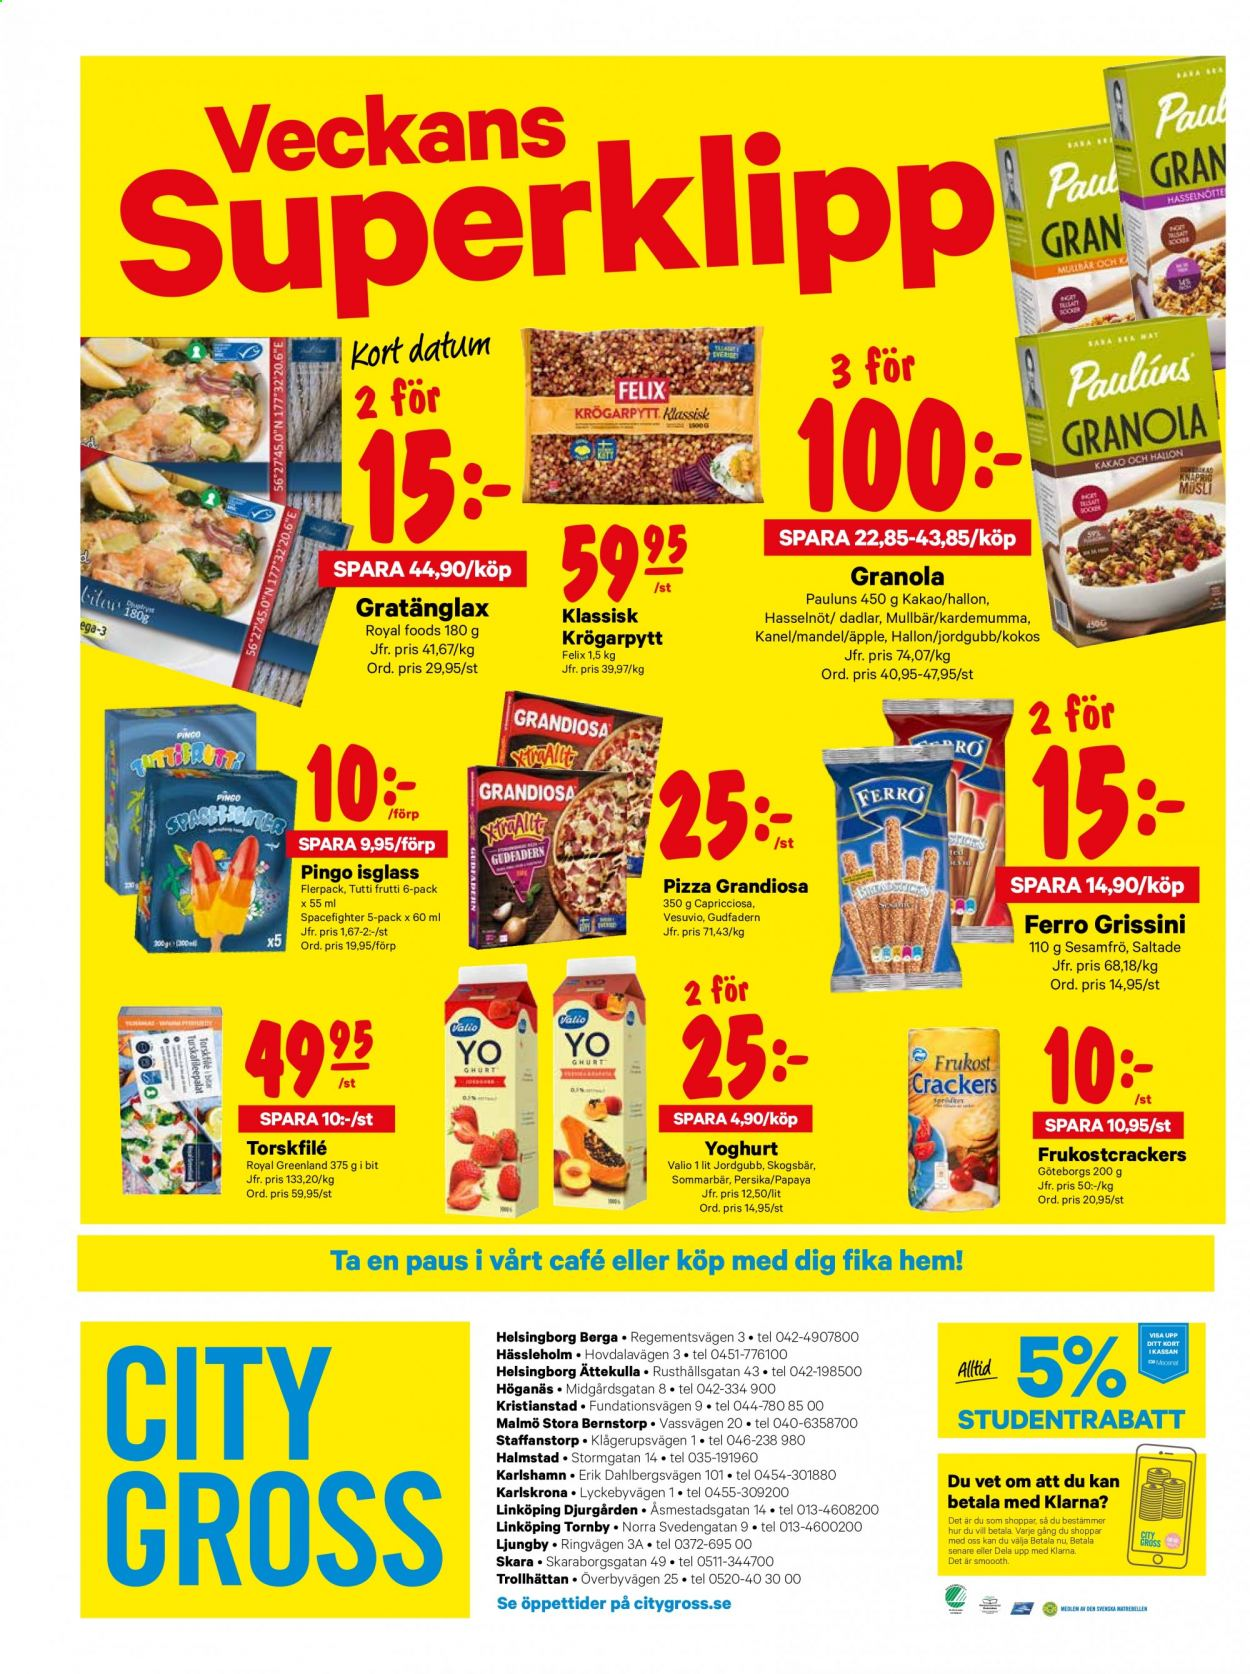 City Gross reklamblad - 3/8 2020 - 9/8 2020. Sida 16.